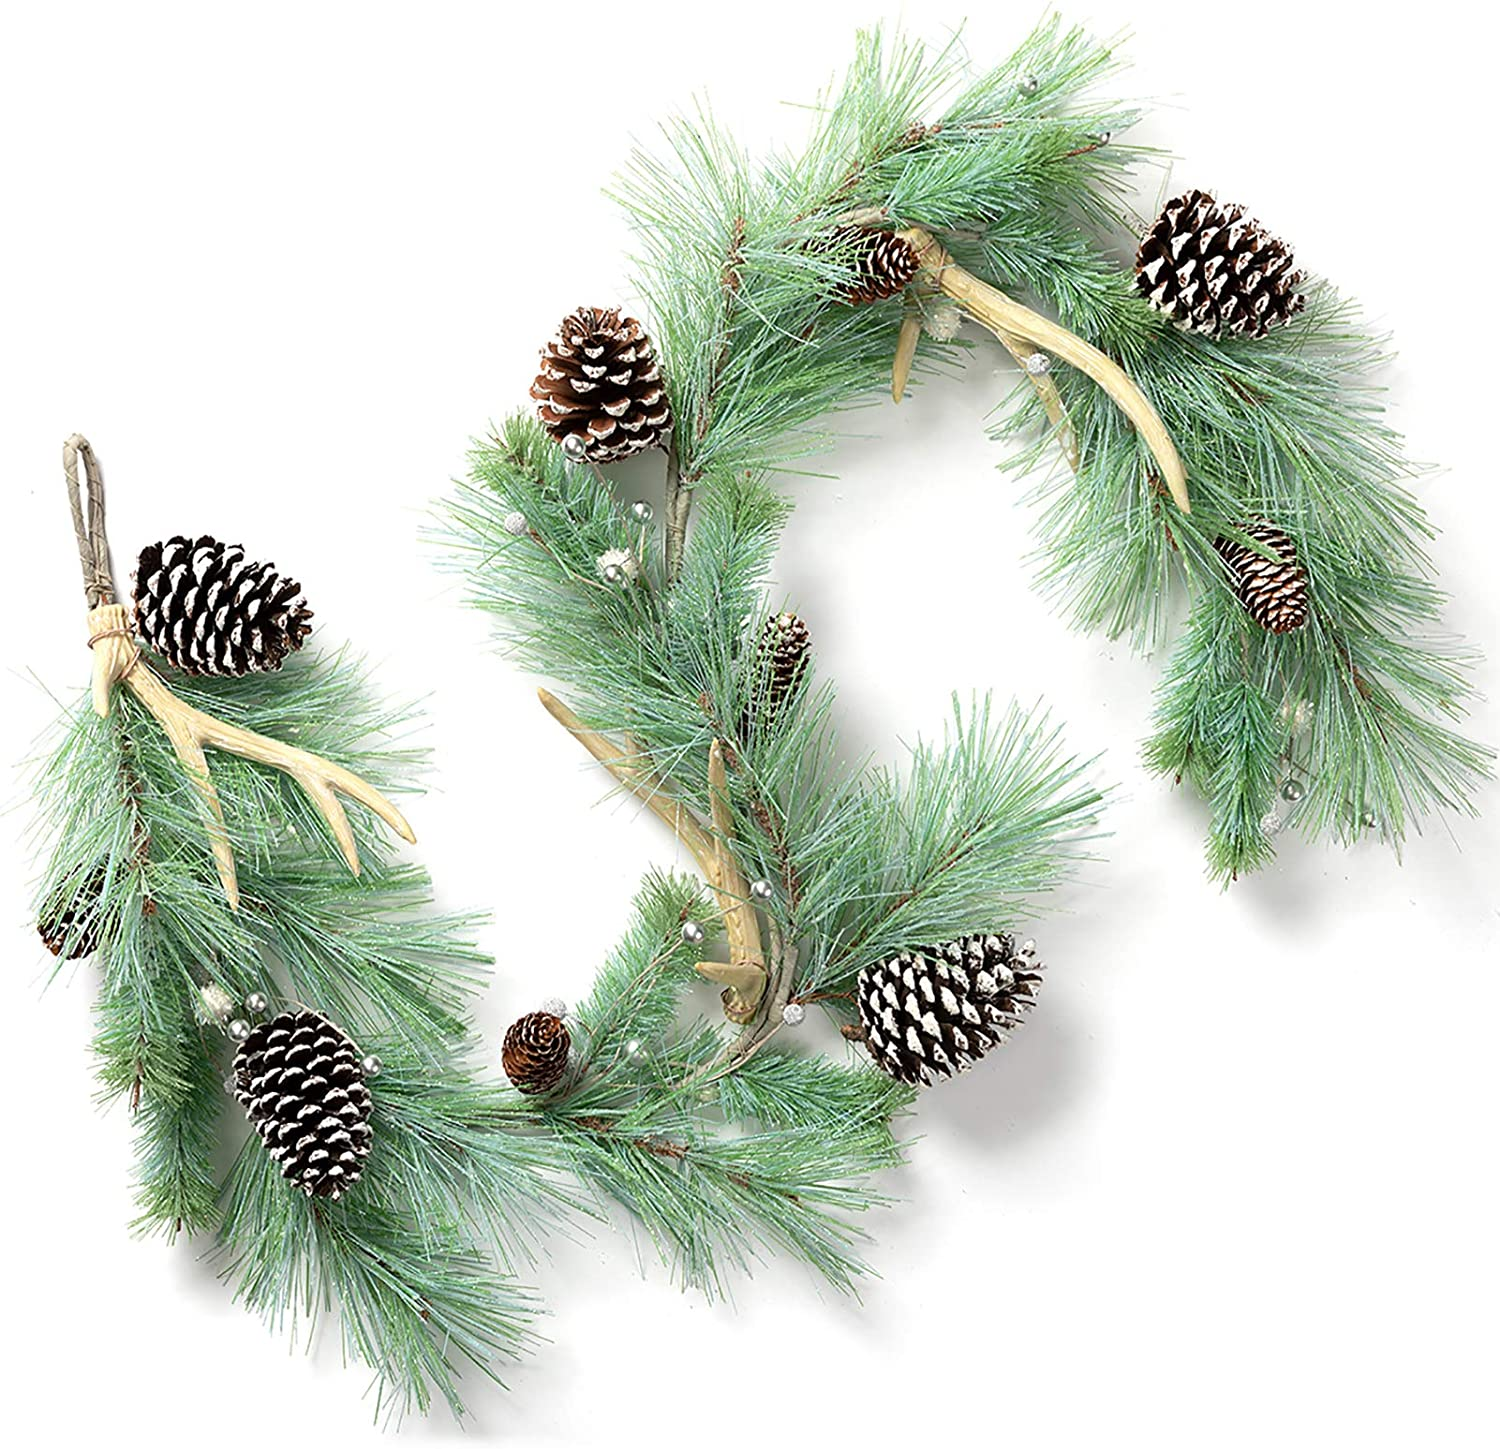 LOHASBEE Artificial Christmas Garland, 5 Feet Pine Cone Frosted Garland with Deer Antlers, Silver Berries for Christmas Indoor Outdoor Garden Gate Home Decor